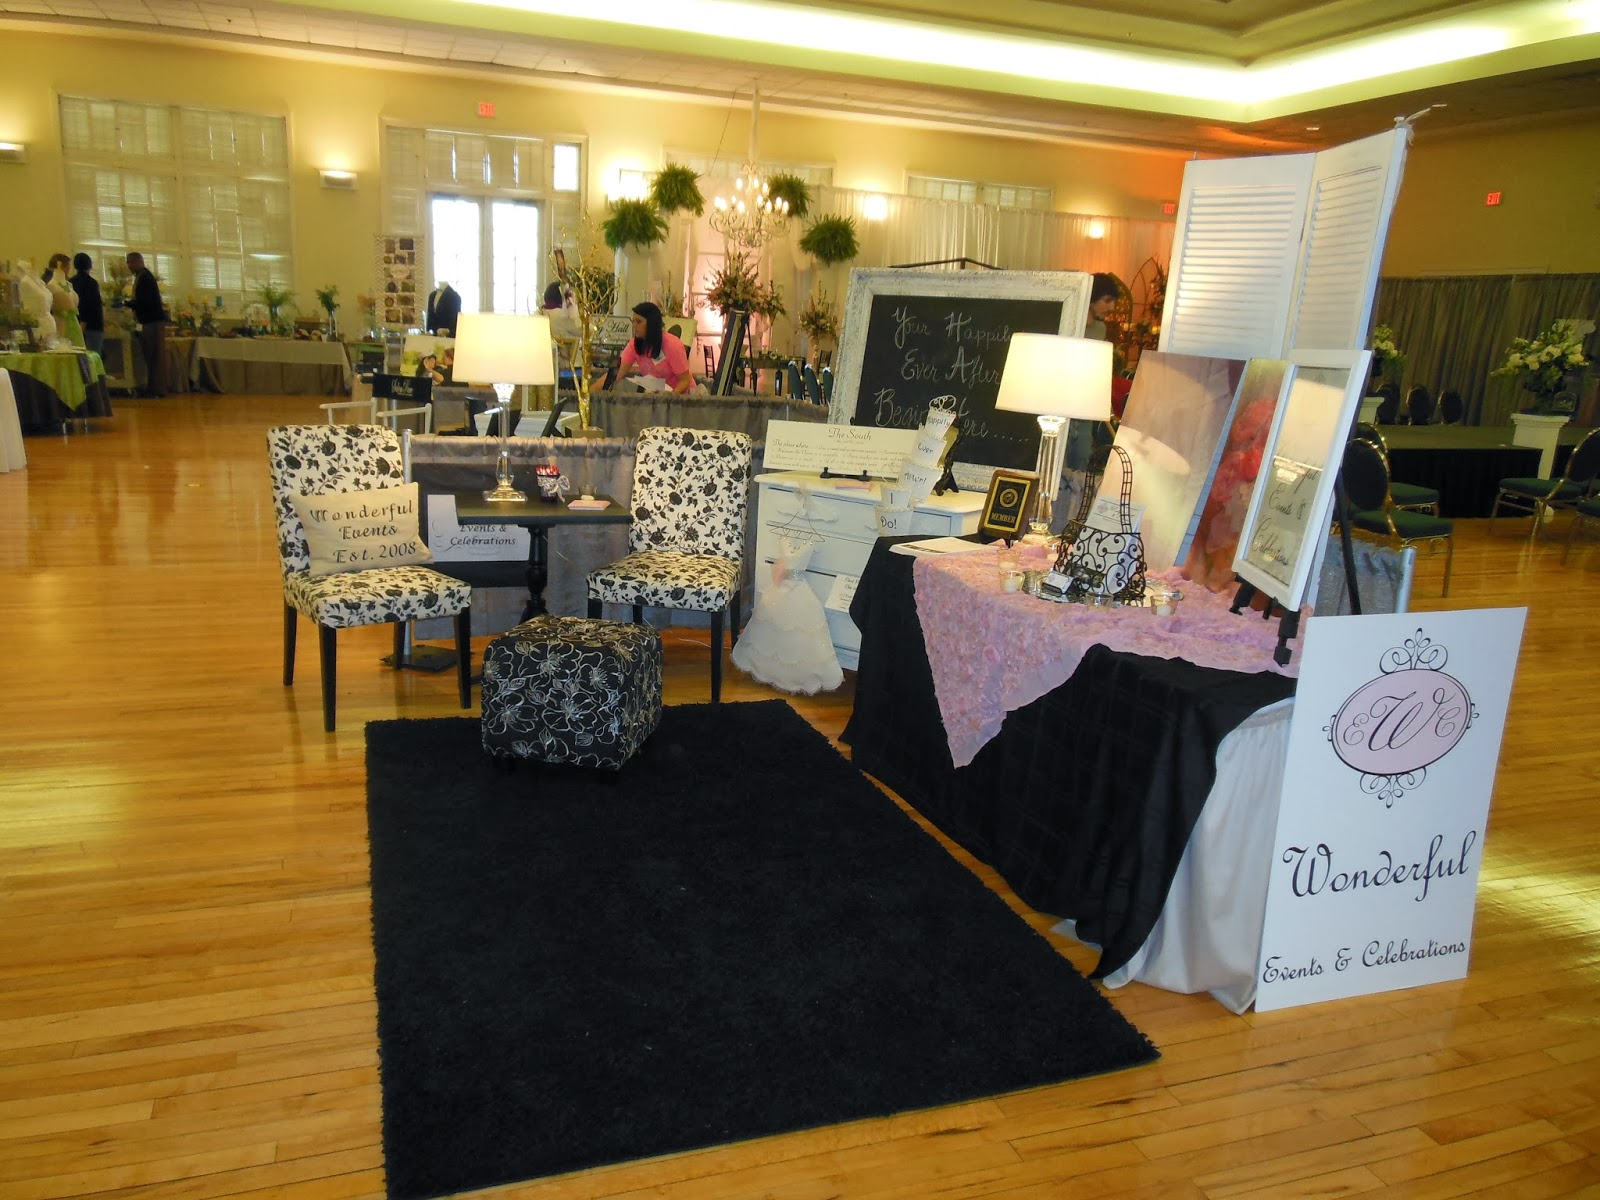 chair cover rentals gainesville fl daycare table and set wonderful events celebrations